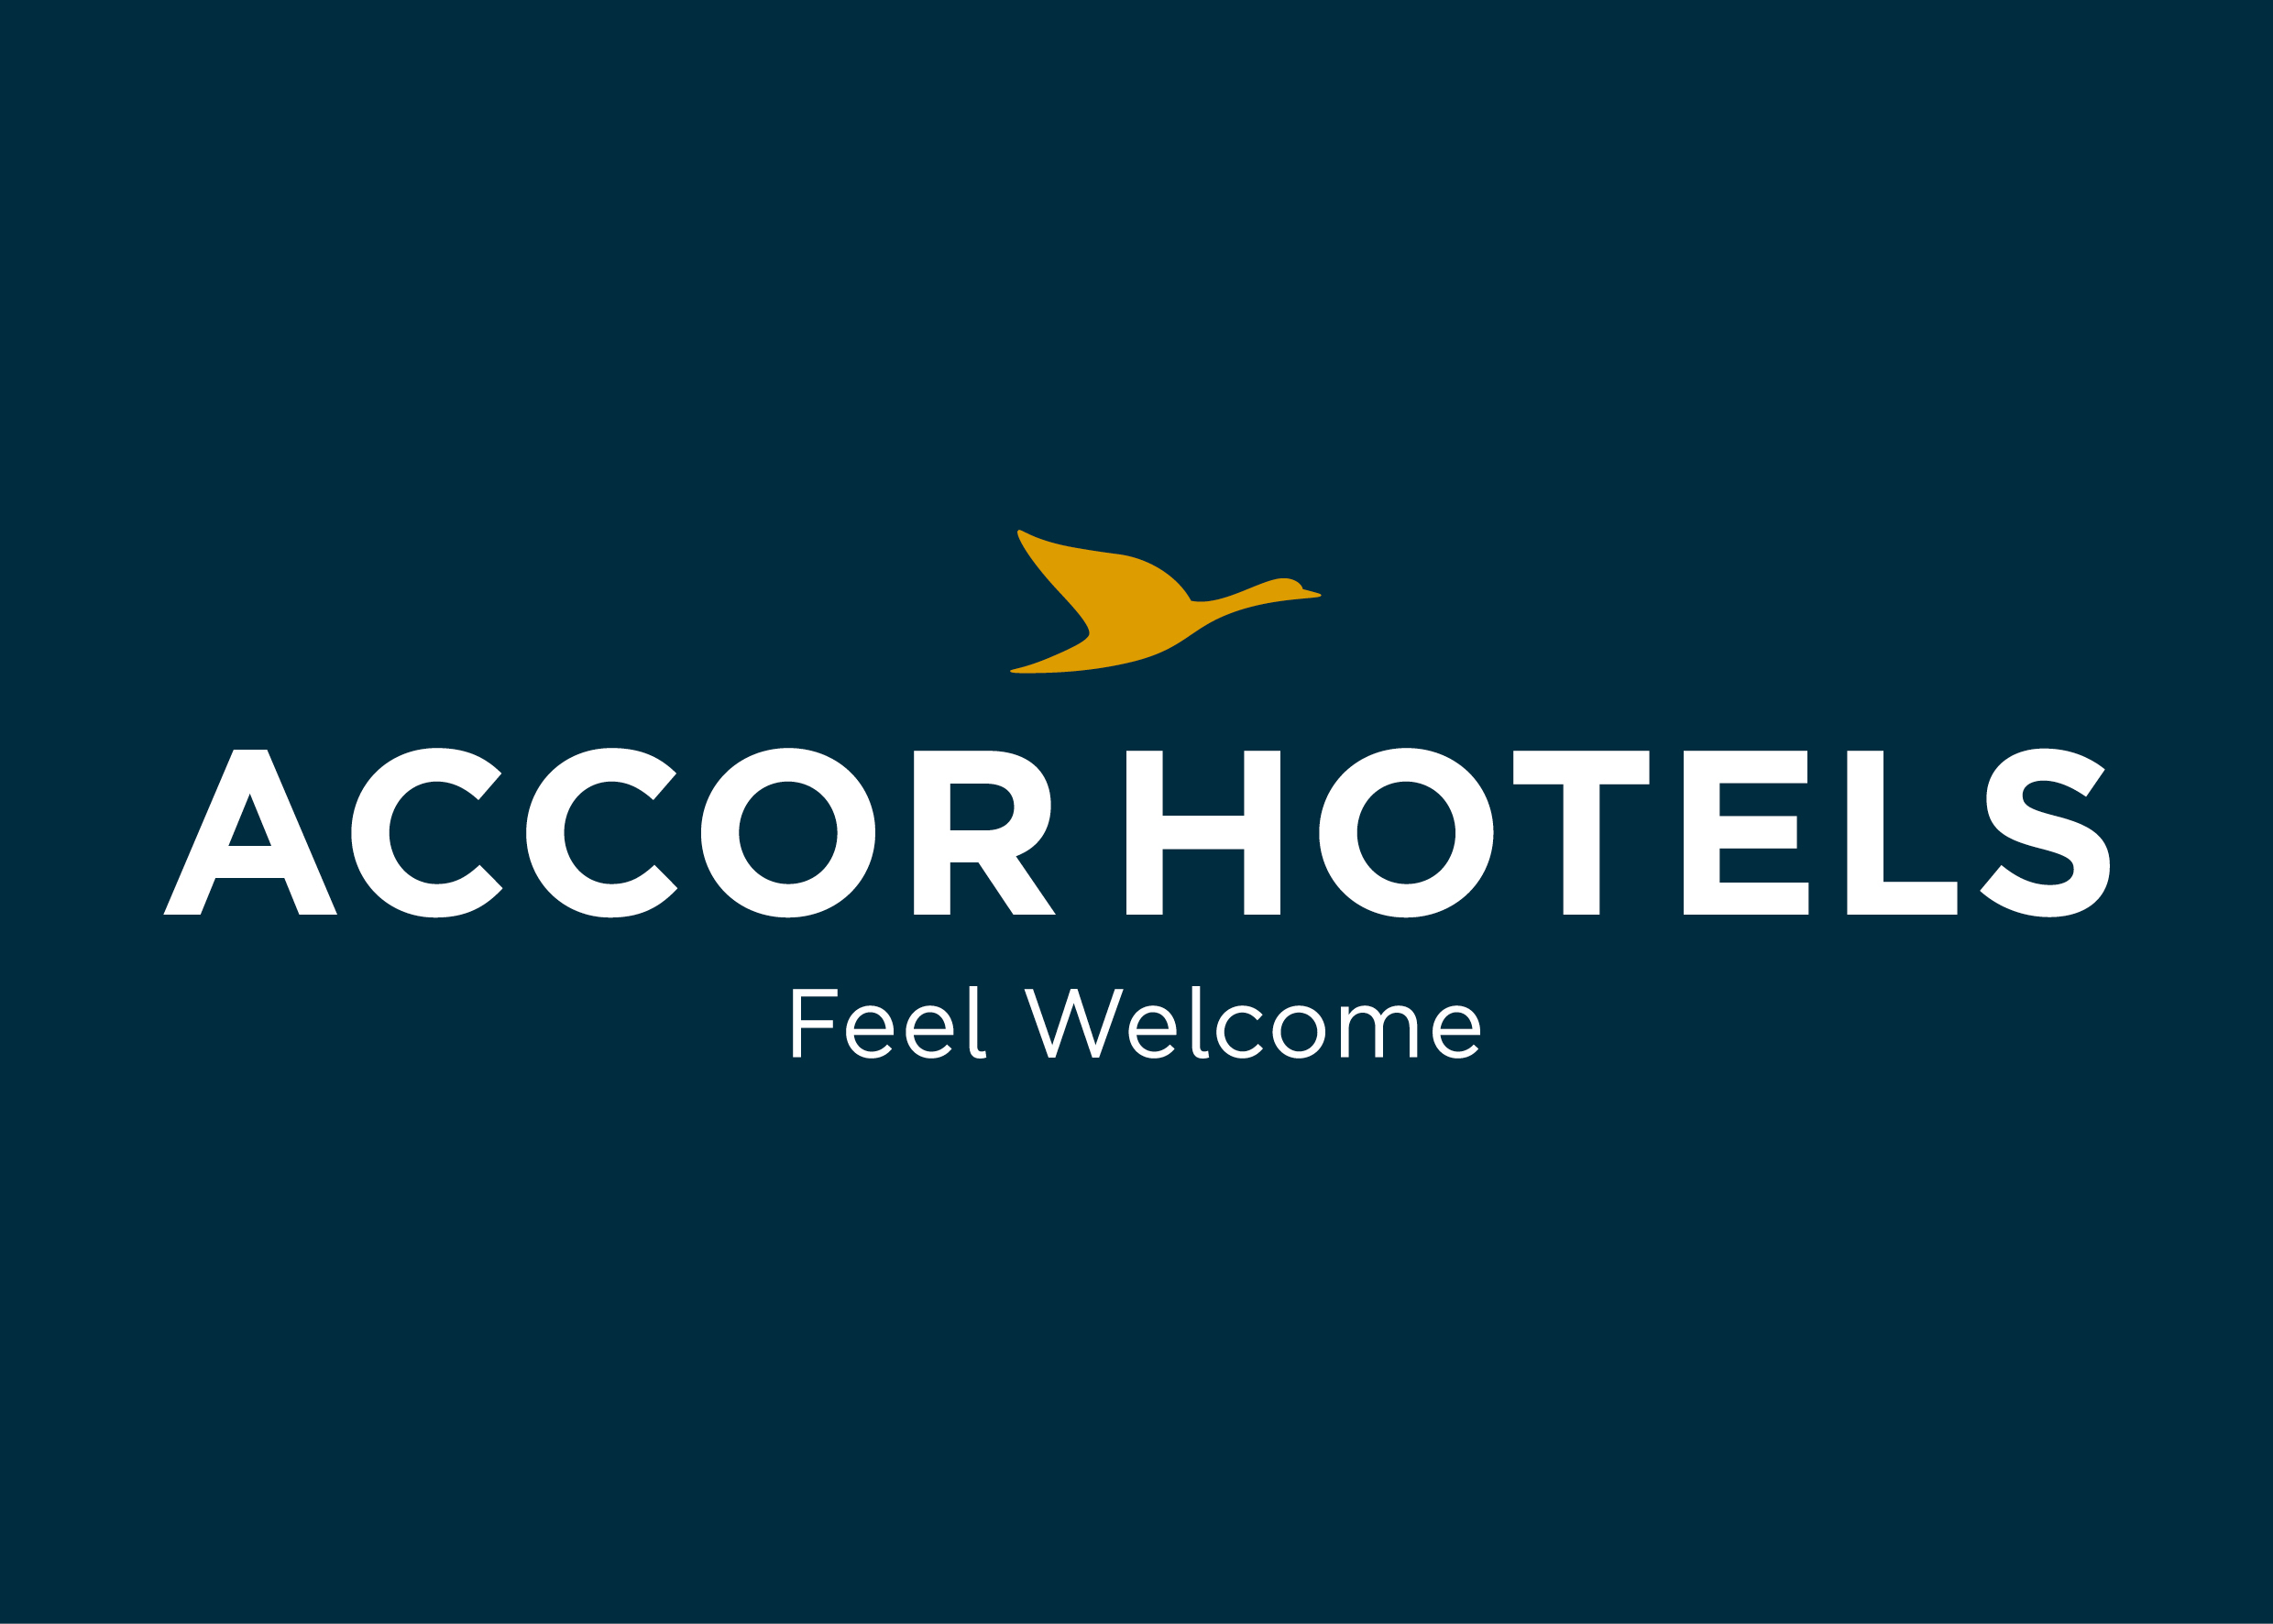 AccorHotels Group. K likes. We're much more than a worldwide leader. We're hotel professionals united by our shared passion for making you.